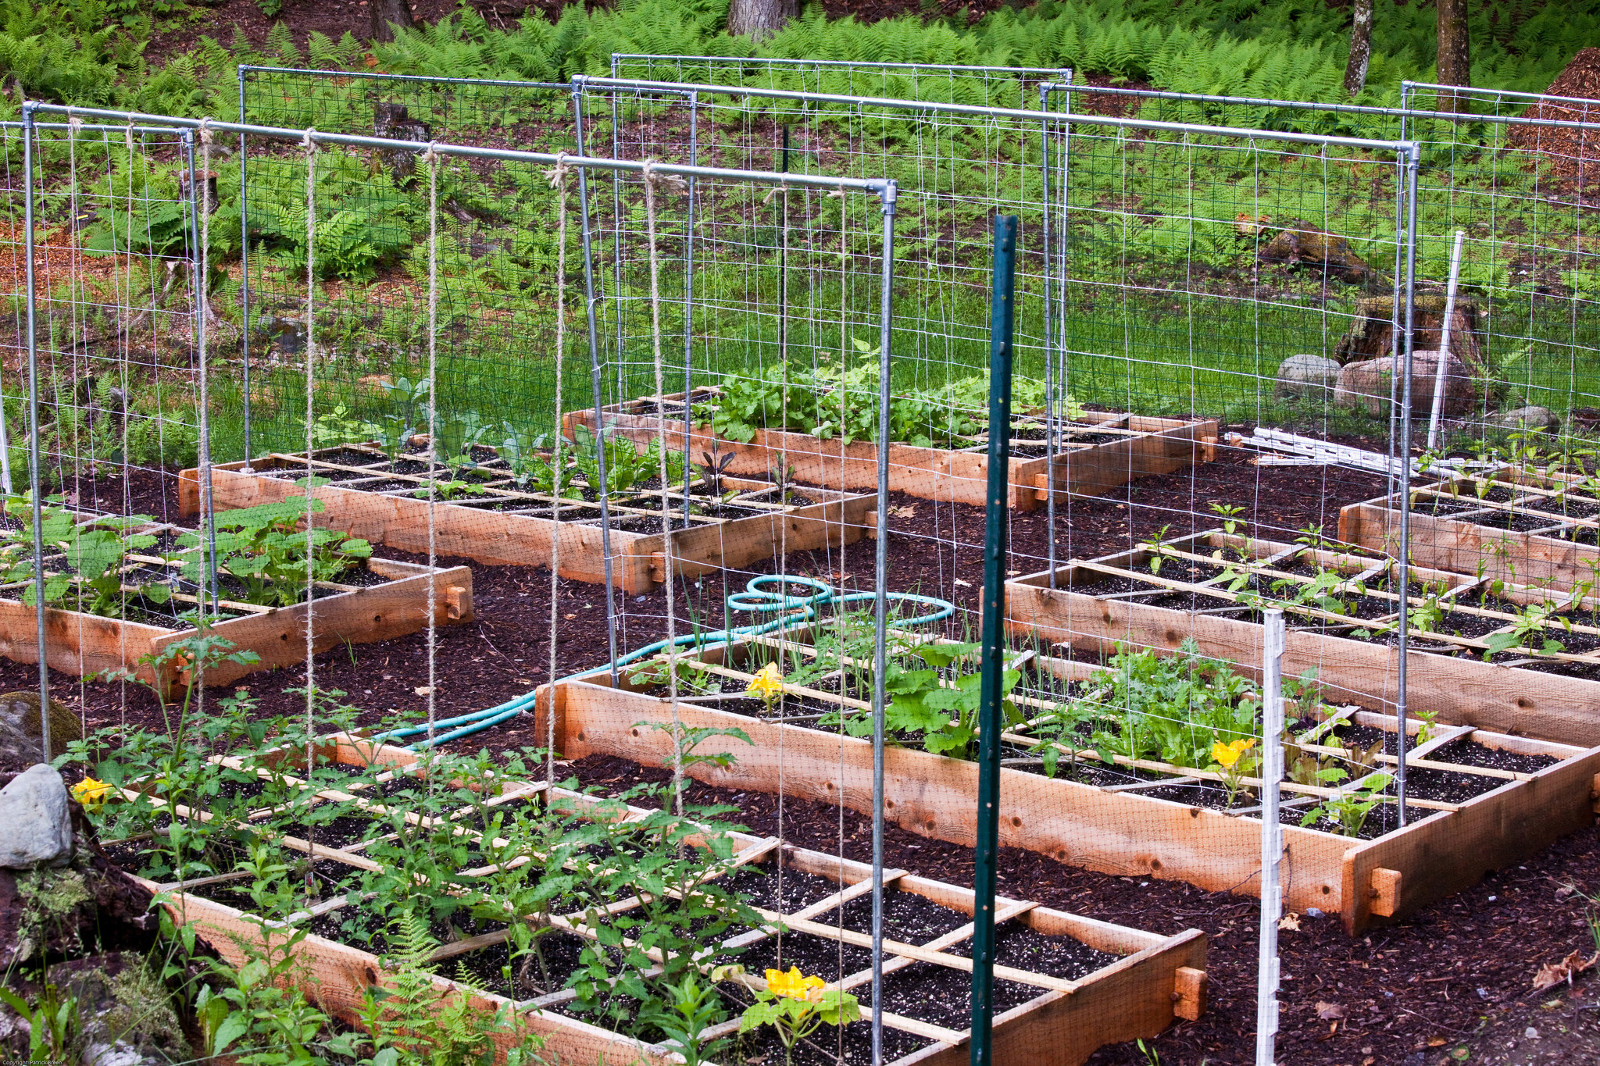 5 Methods for Making Raised Garden Beds